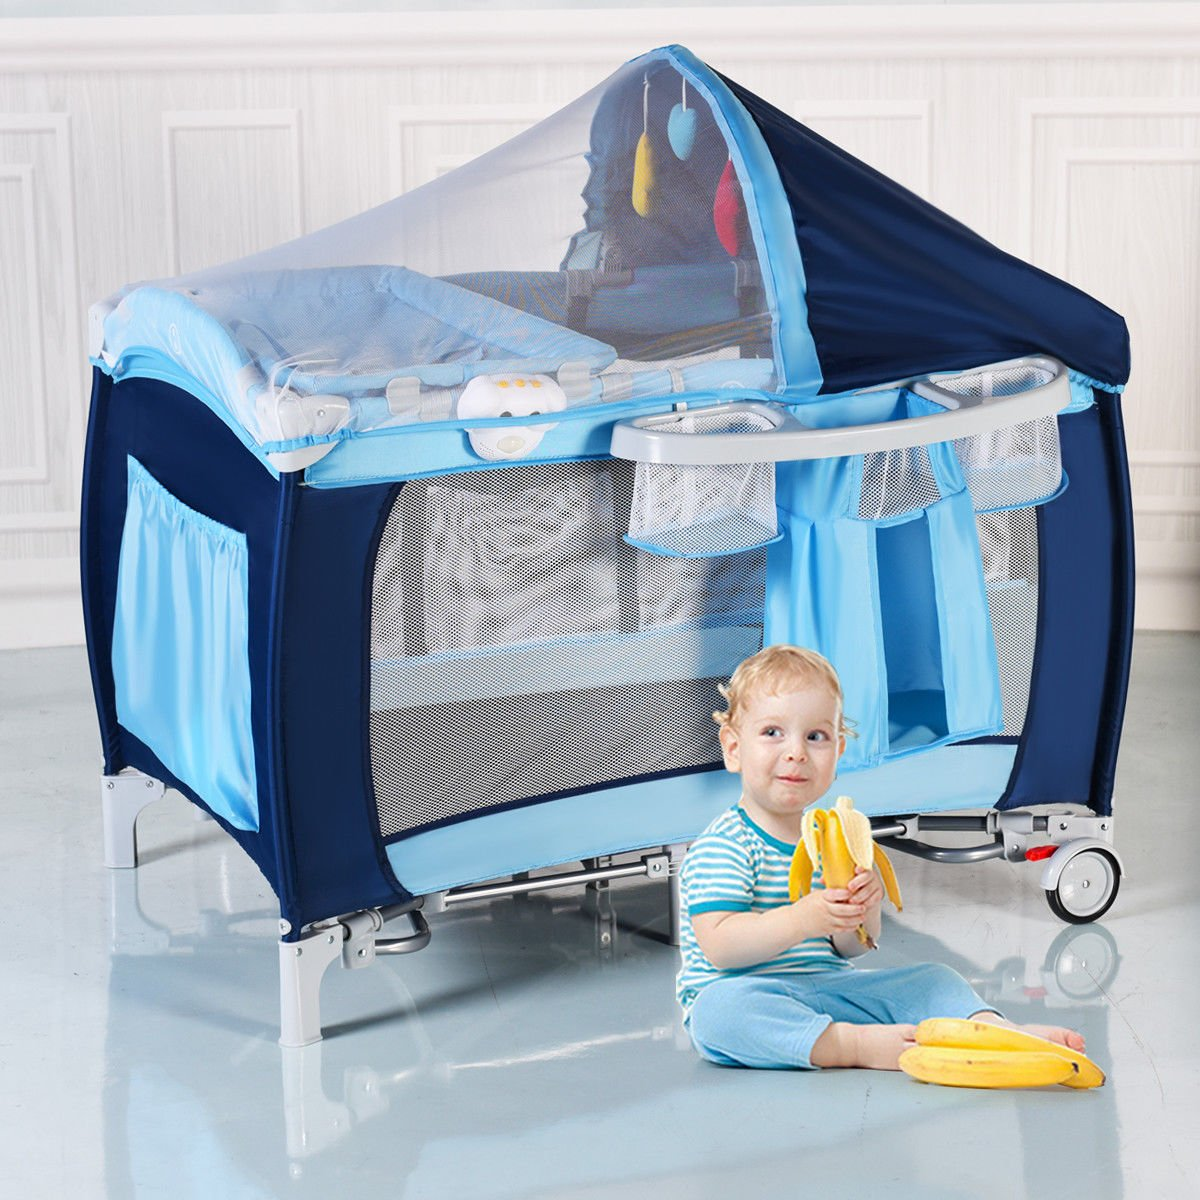 New Foldable Baby Crib Playpen Travel Infant Bassinet Bed Mosquito Net Music w Bag by Costway (Image #1)